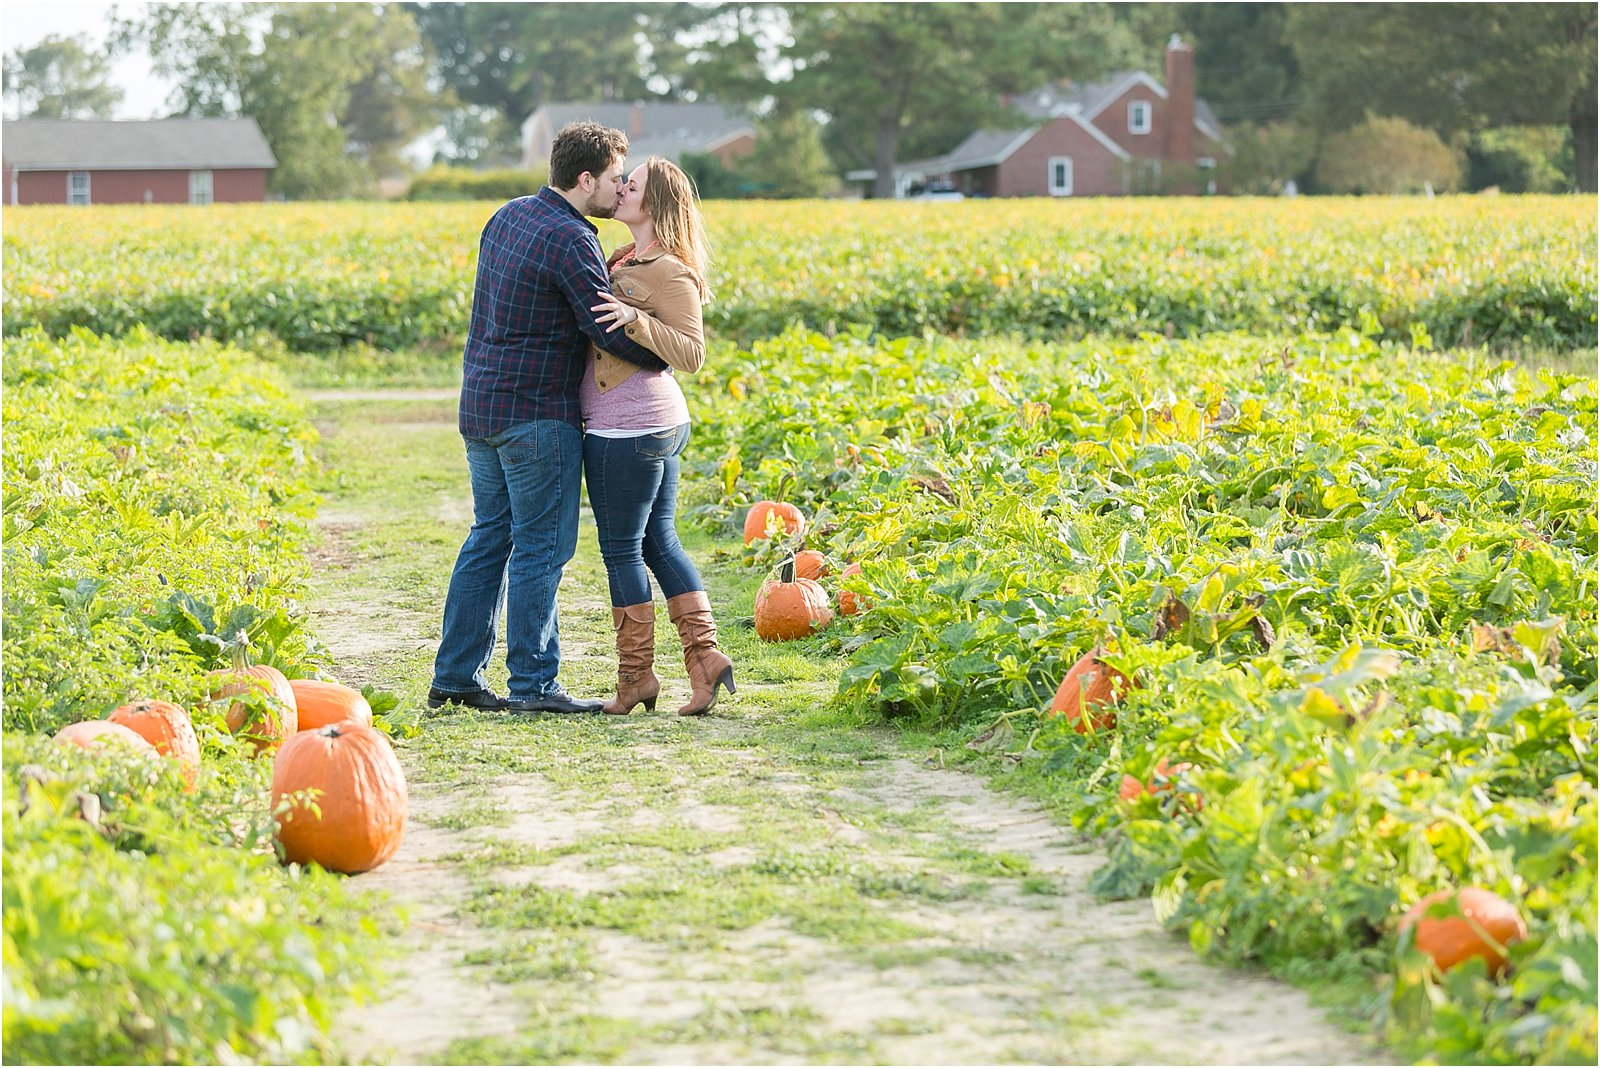 jessica_ryan_photography_pumpkin_patch_engagement_portraits_fall_october_engagements_virginia_beach_chesapeake_0287